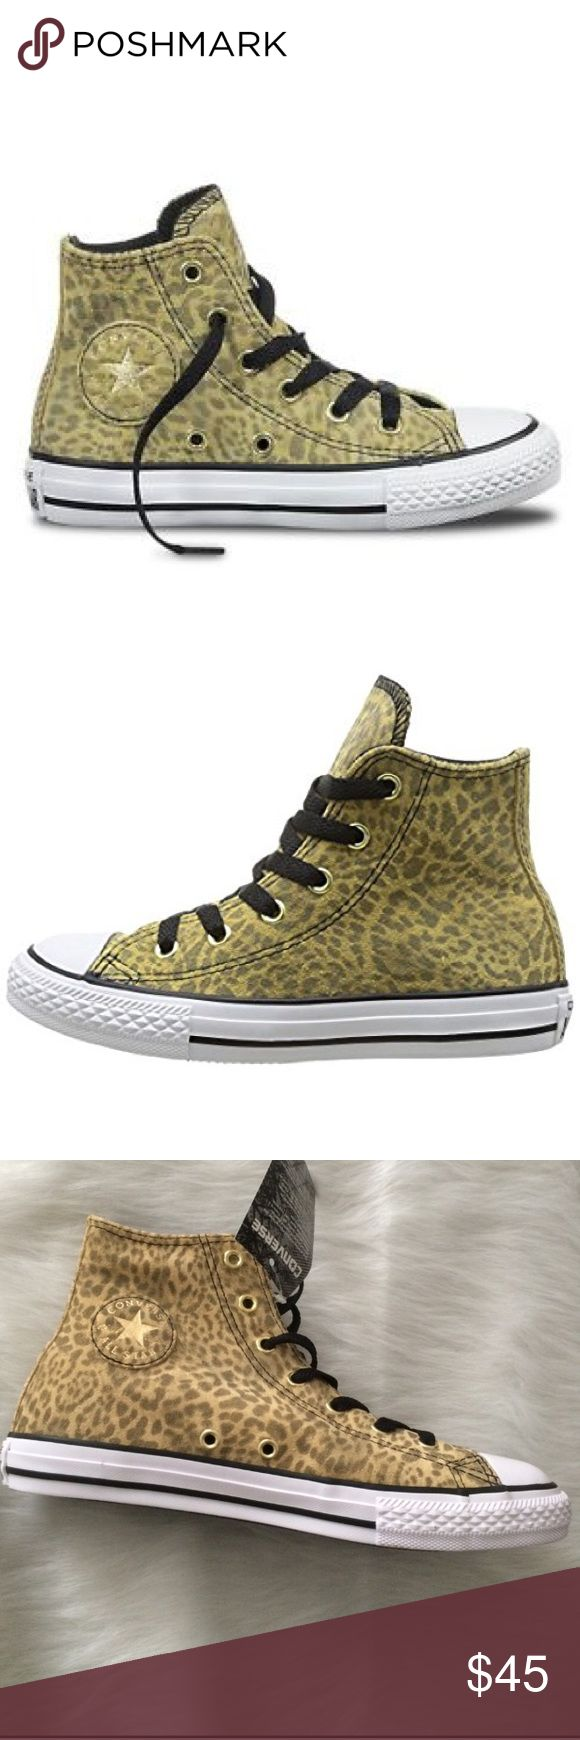 🌴☀️SALE! Converse womens size 7 shoe Leather Brand new. Shoes are a juniors size 5 which is a women's size 7 Converse Shoes Sneakers